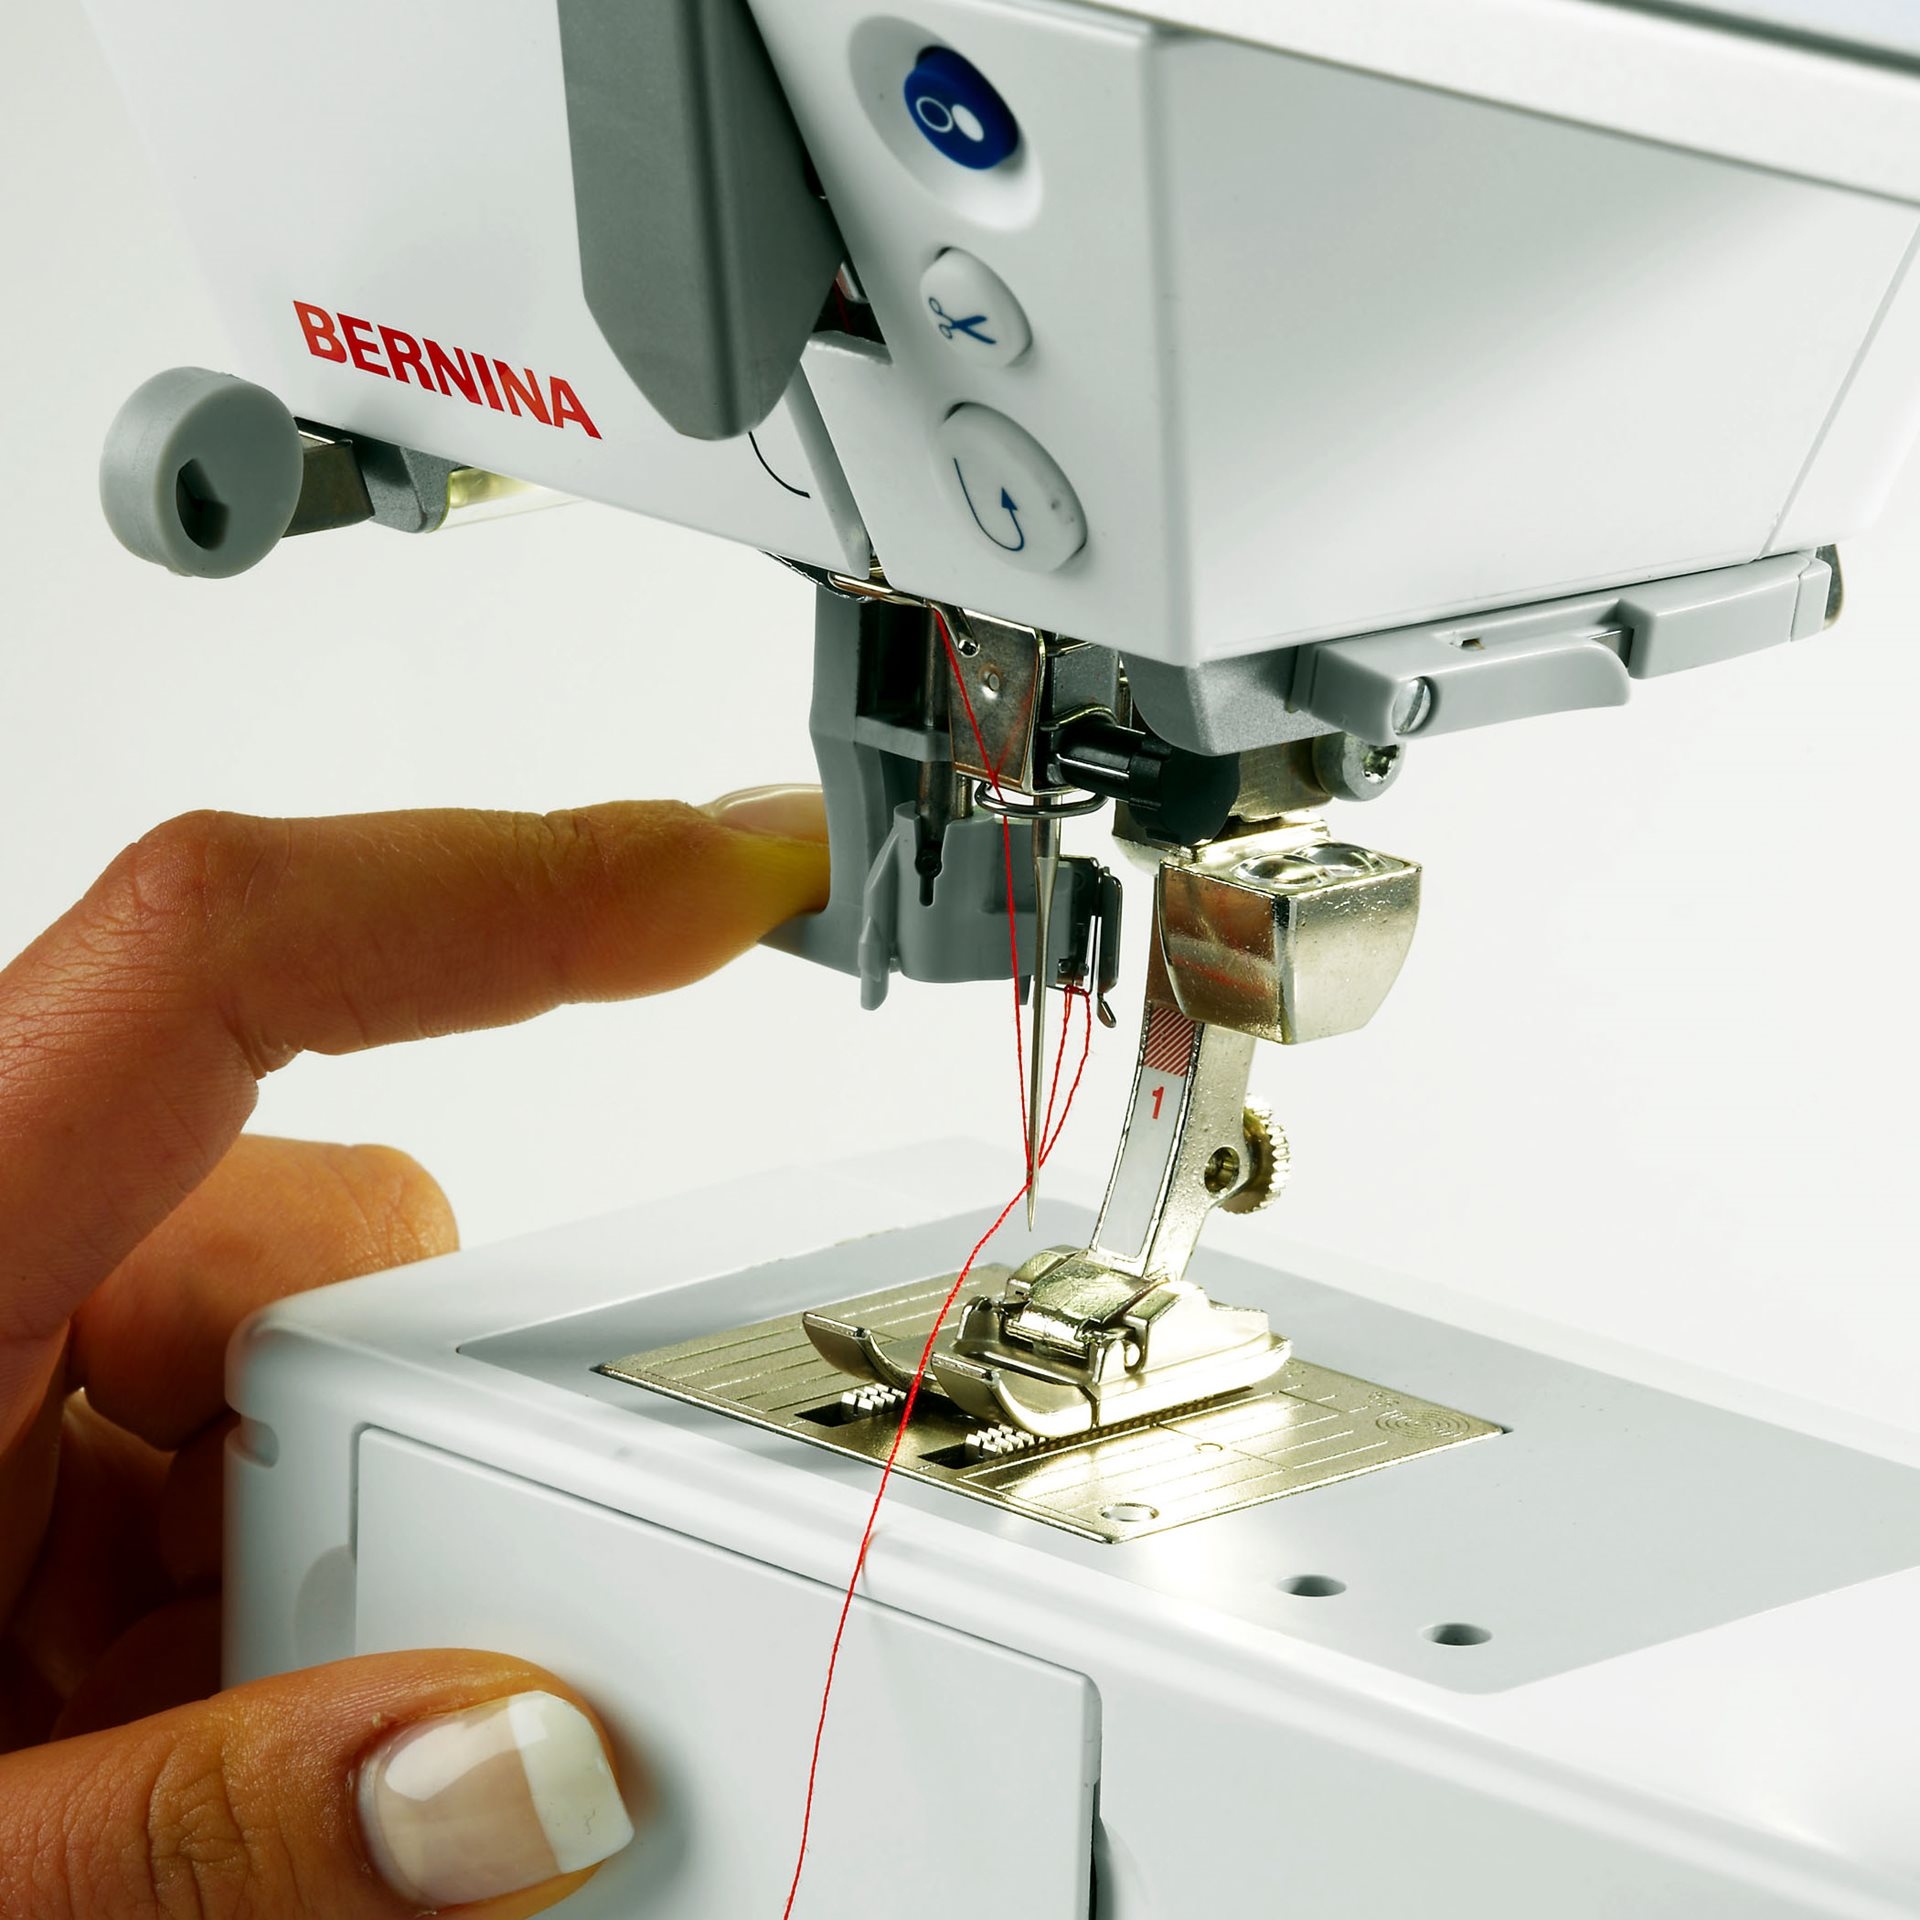 BERNINA 215 with built-in needle threader